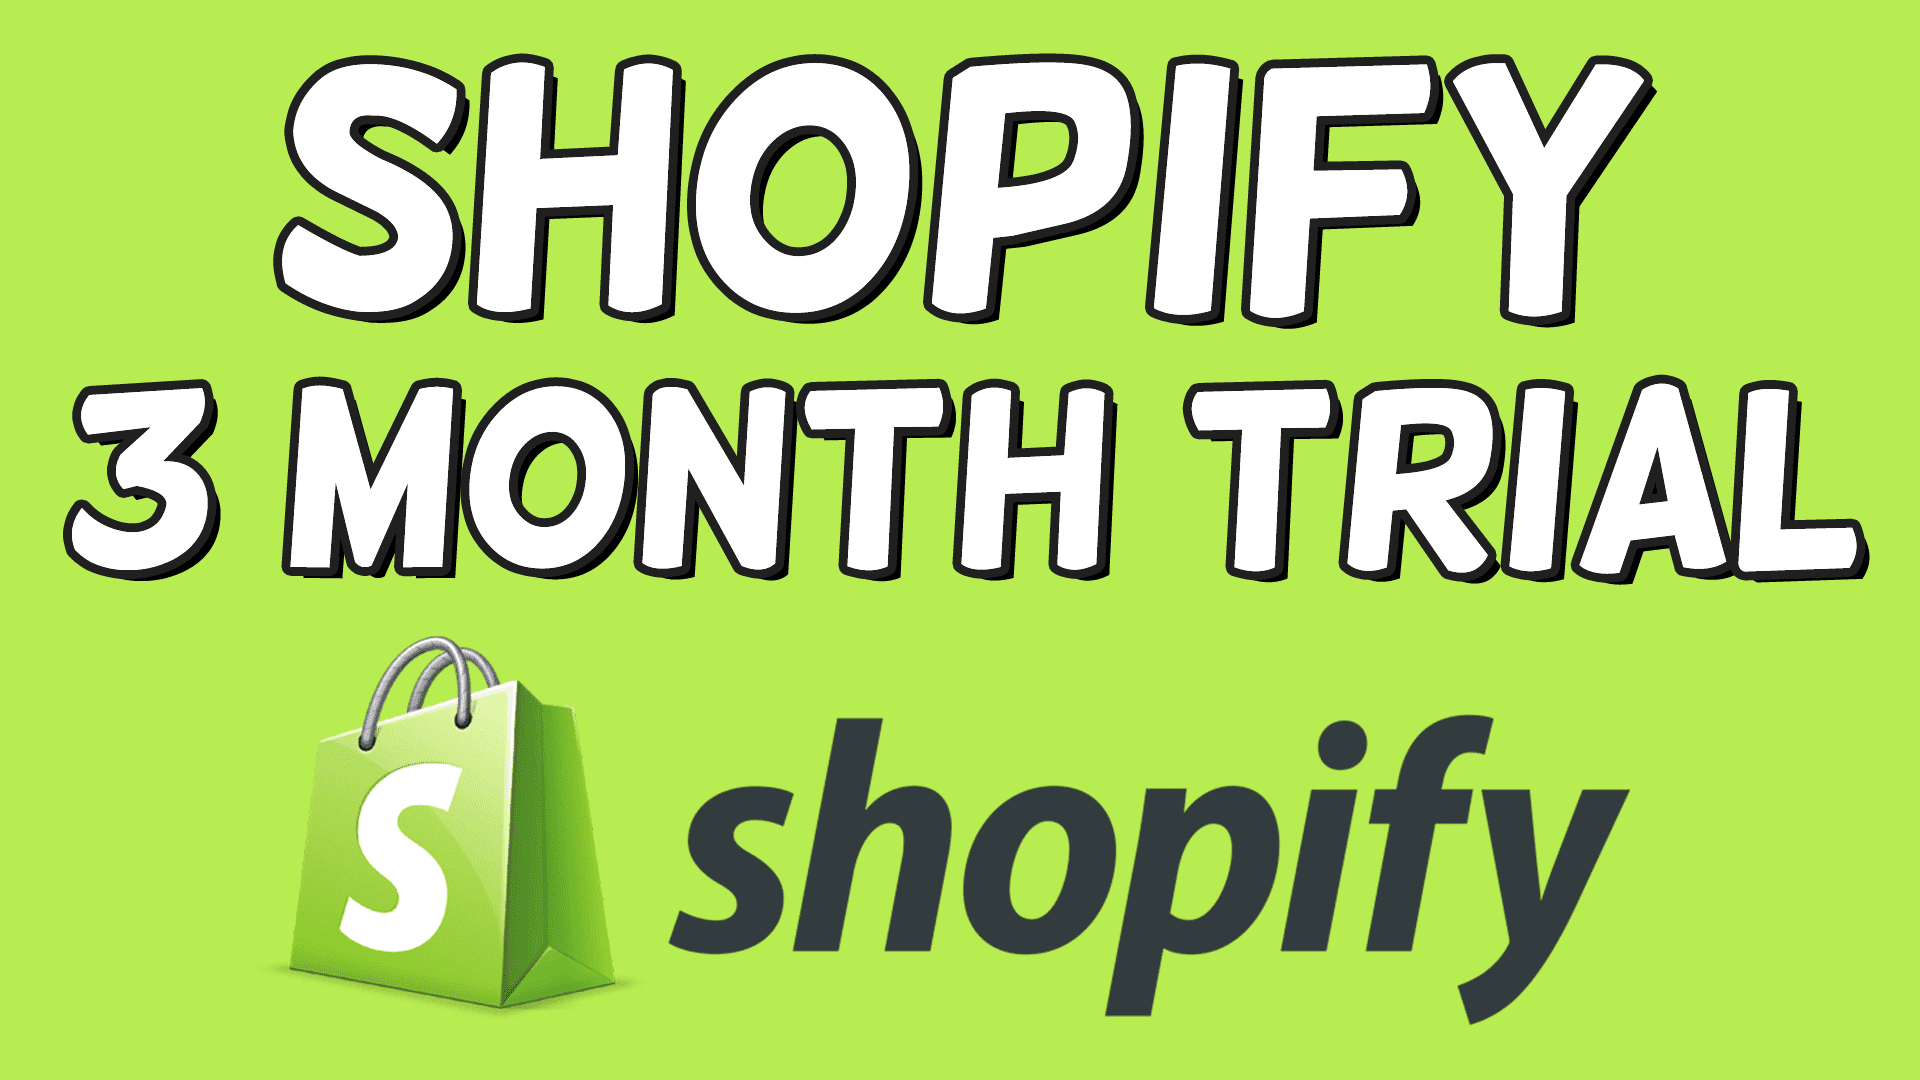 Shopify 3 Month Trial